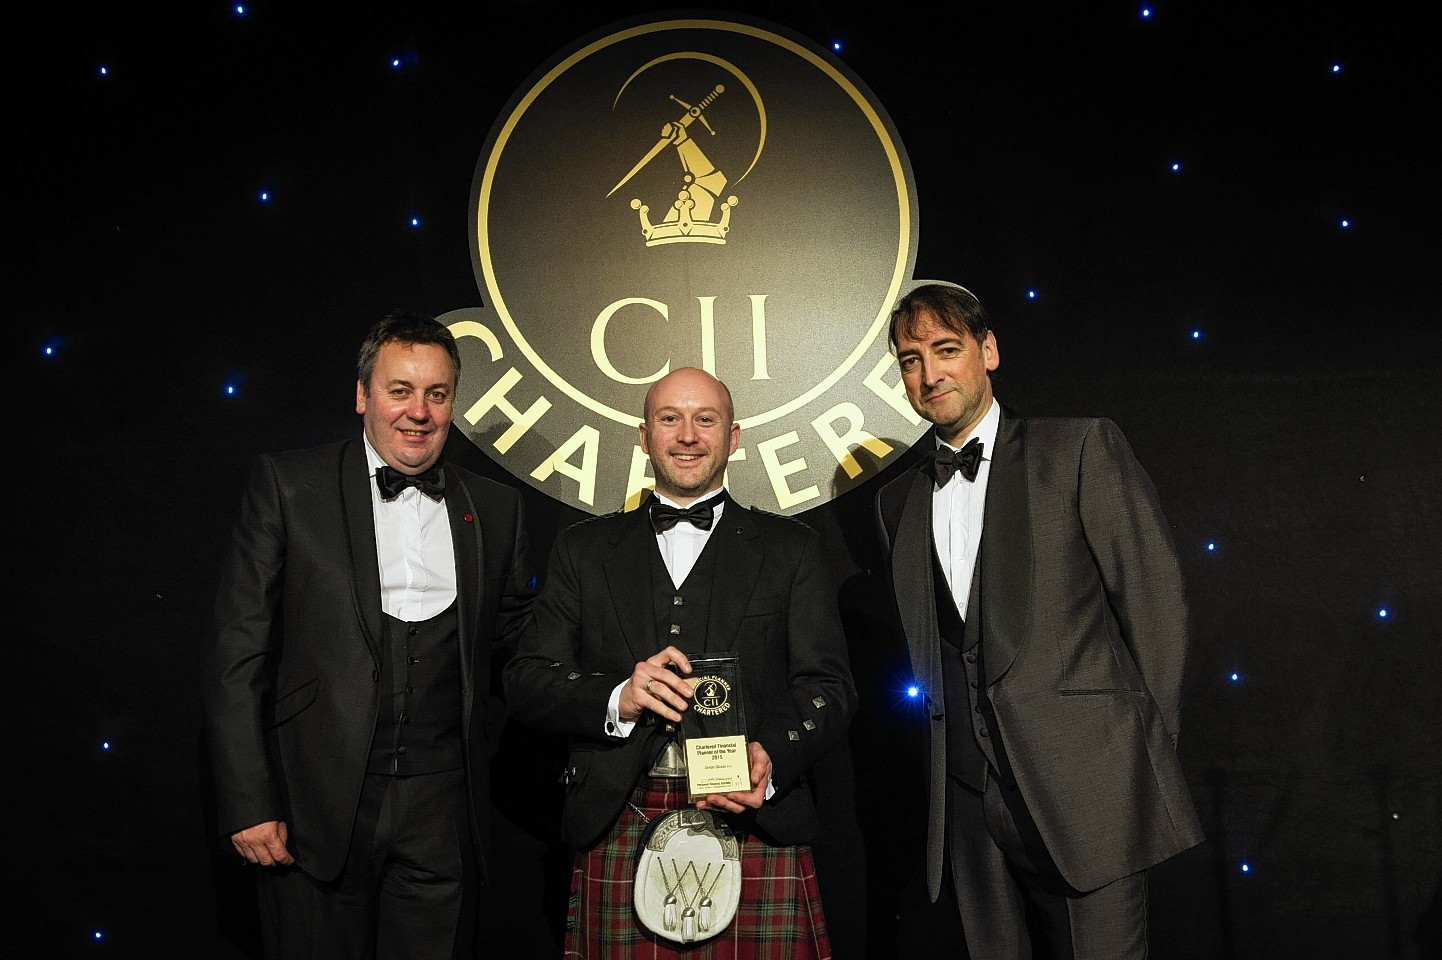 Simon Glazier, Andrew Megson, retirement managing director at financial services firm Partnership, and Alistair McCowan at the Chartered Awards